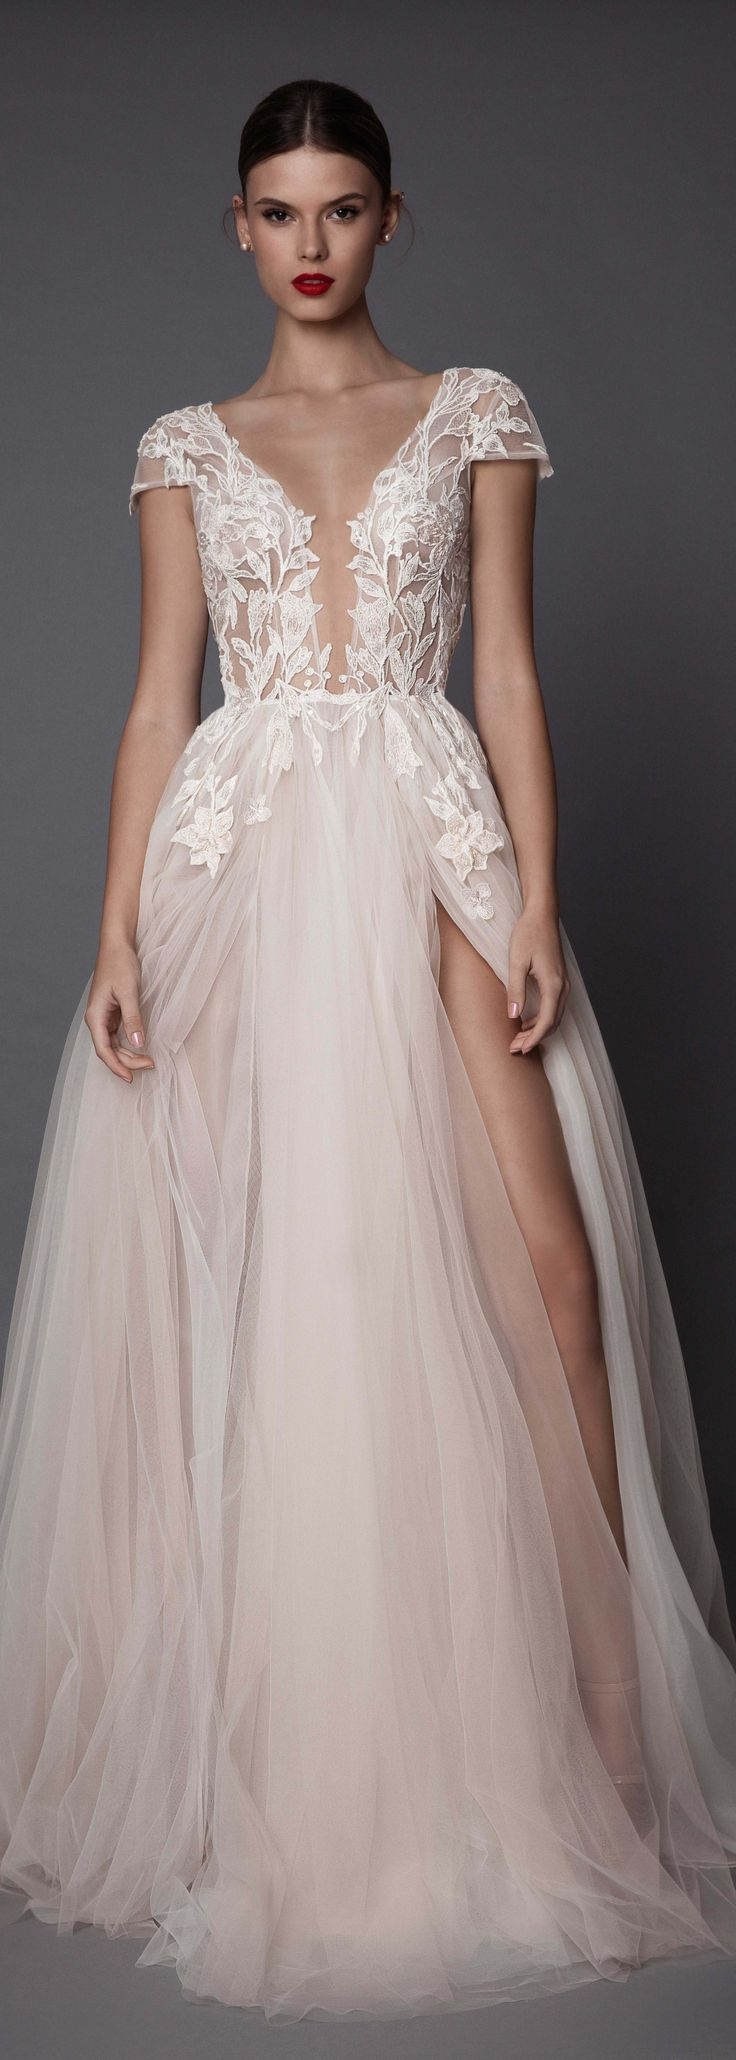 BERTA presents a new bridal line - MUSE by berta. coming soon.